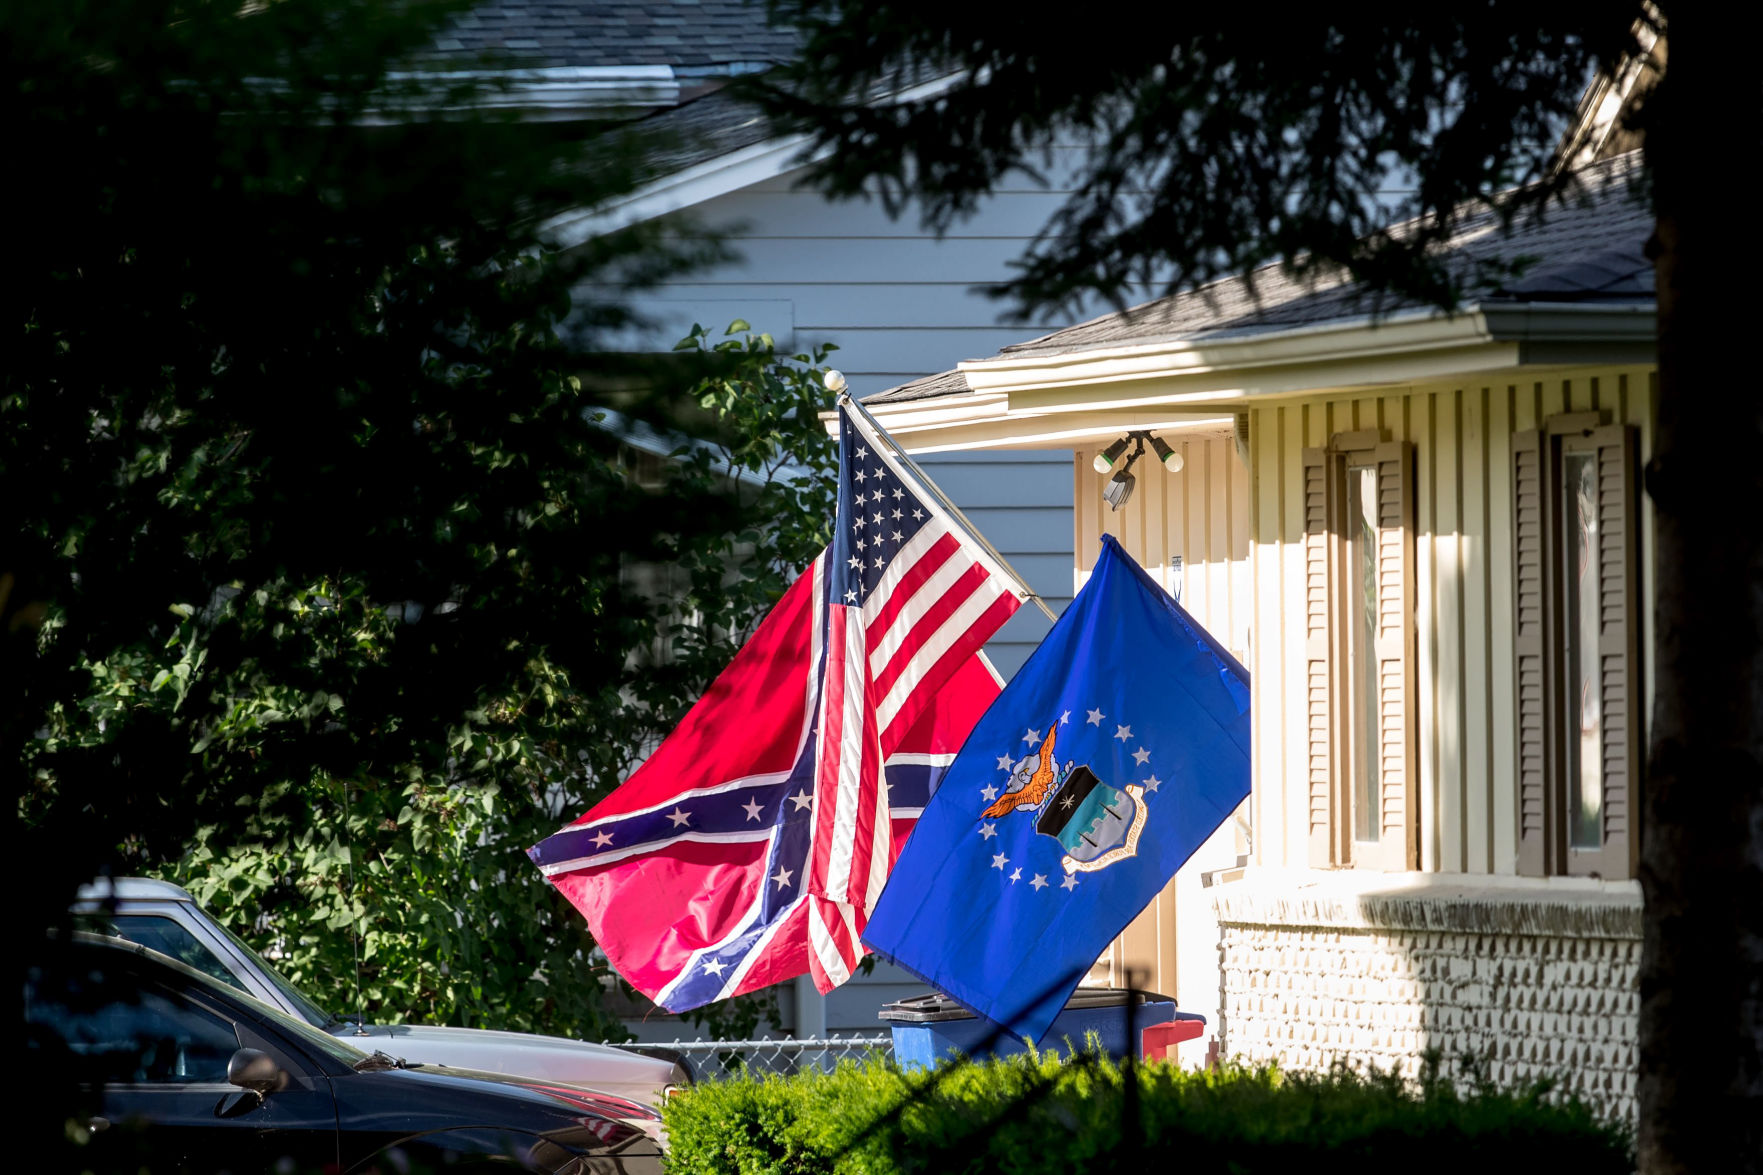 Us Area Code History%0A The Public Pulse  Flying the Confederate flag disrespects the American flag